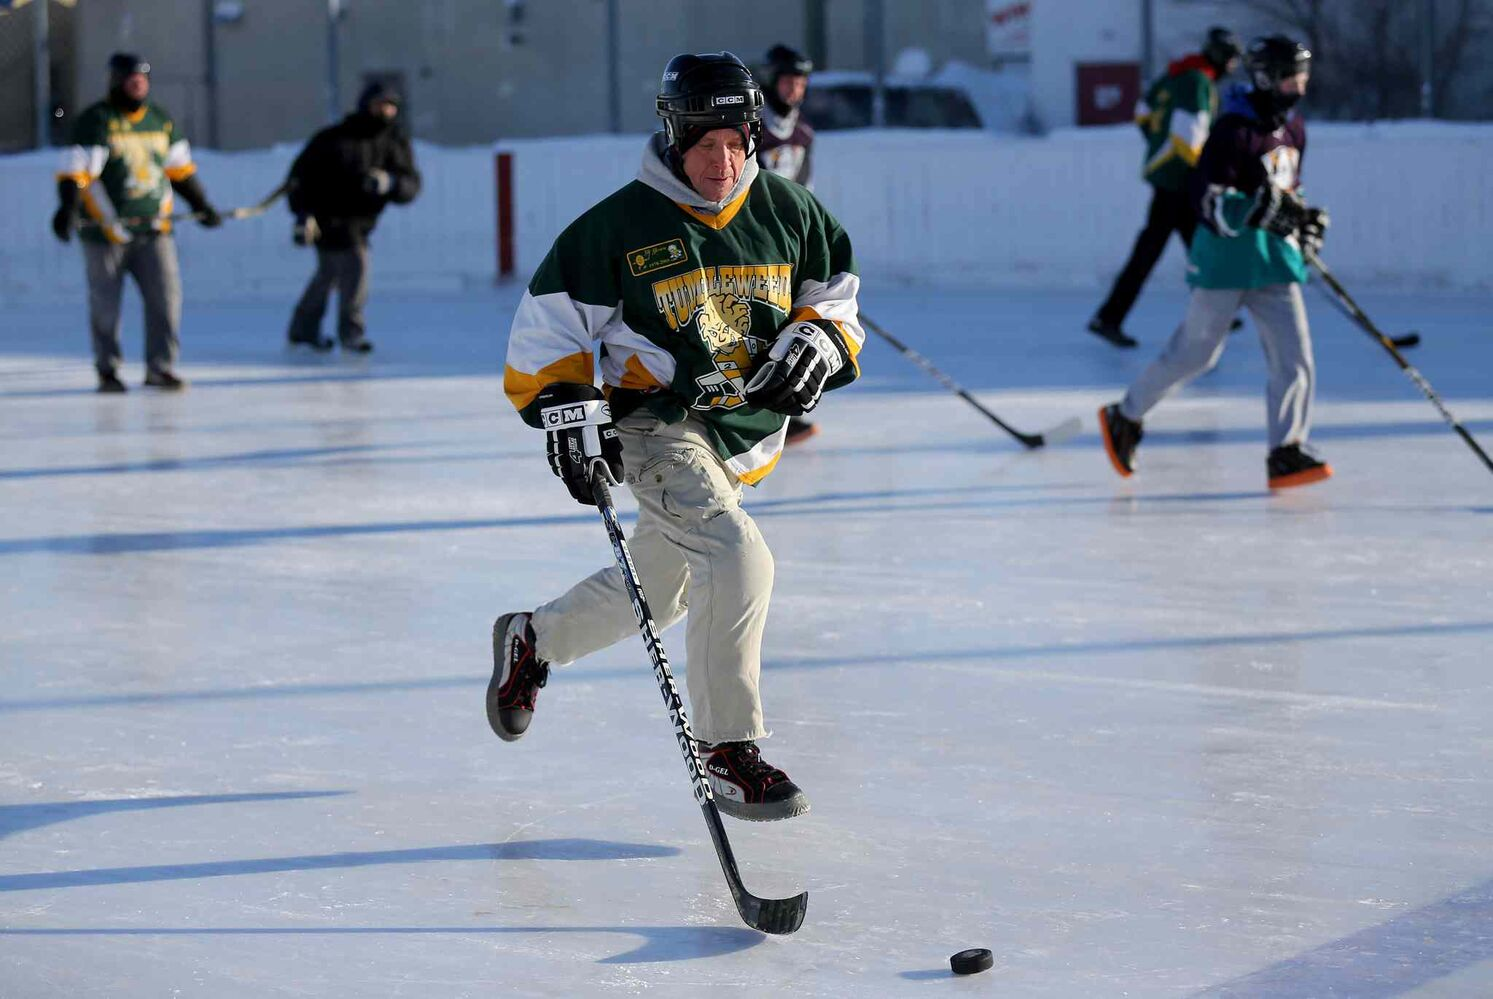 Colin Mackenzie of the Tumbleweeds plays against the Mighty Puckin' Drunks during a spongee game at Melrose Park Community Centre on Jan. 4, 2014. (Trevor Hagan / The Winnipeg Free Press)